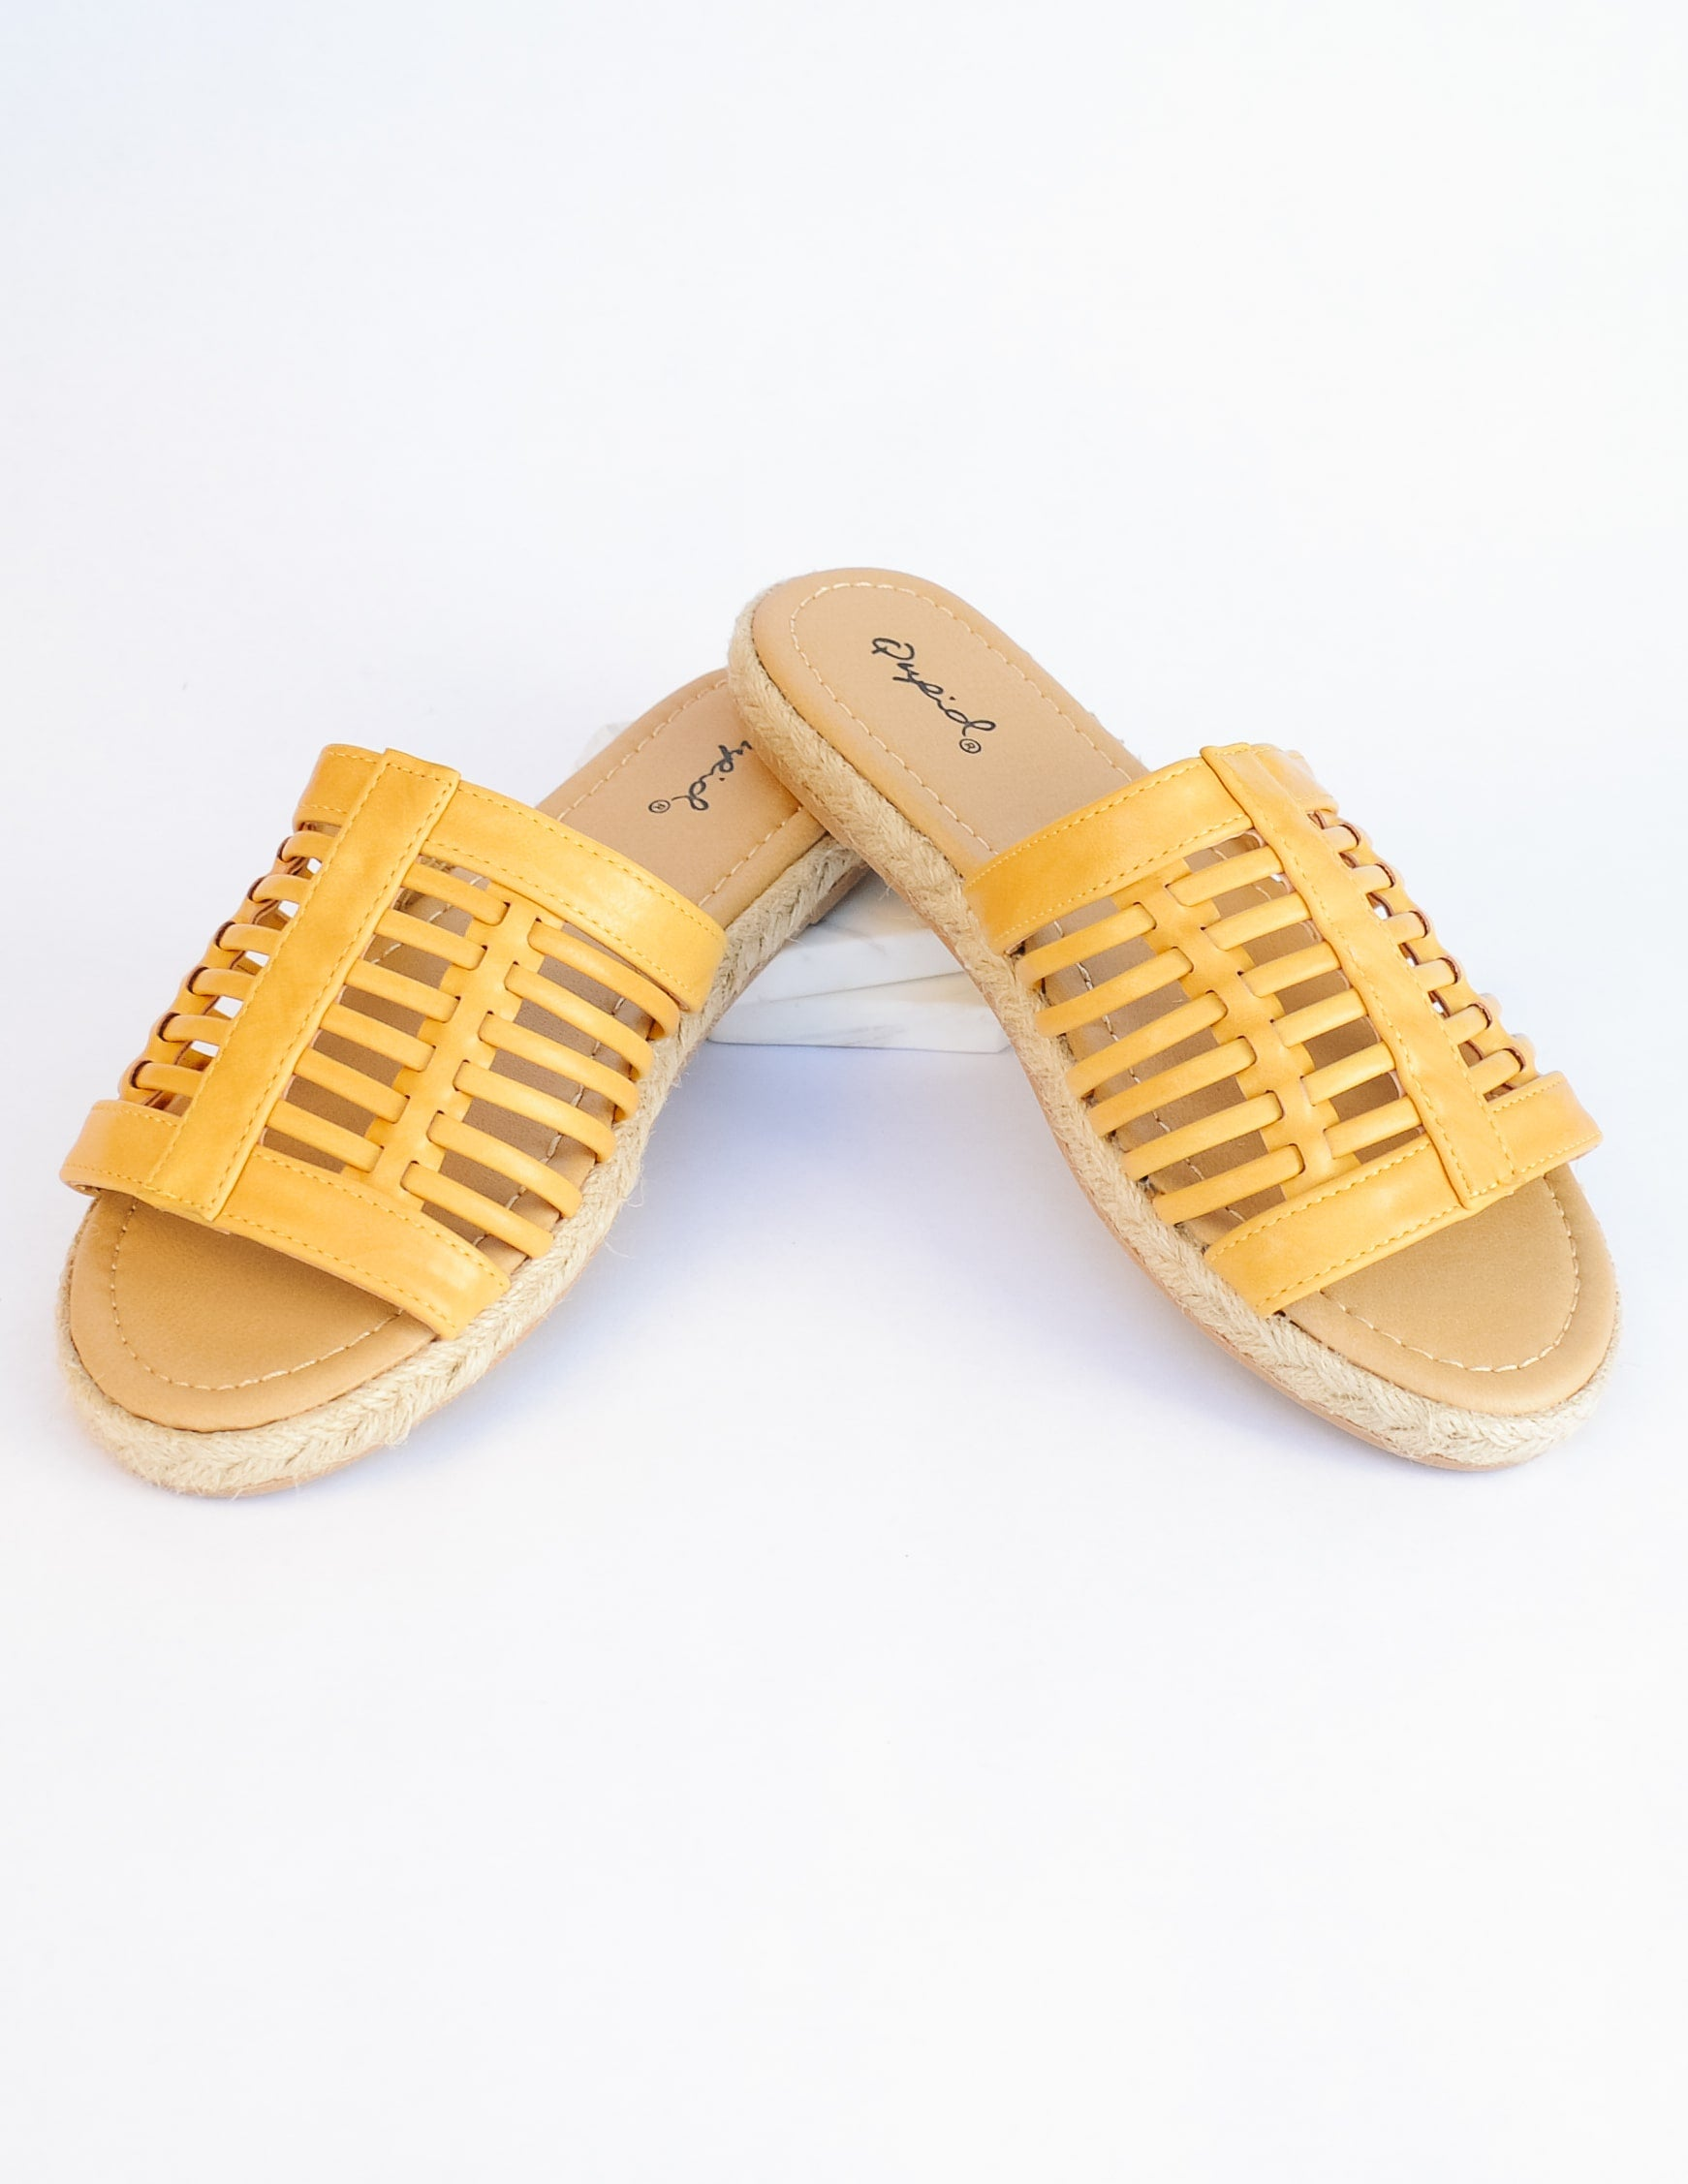 Mustard surf's up sandal with cage upper and tan insole on white background